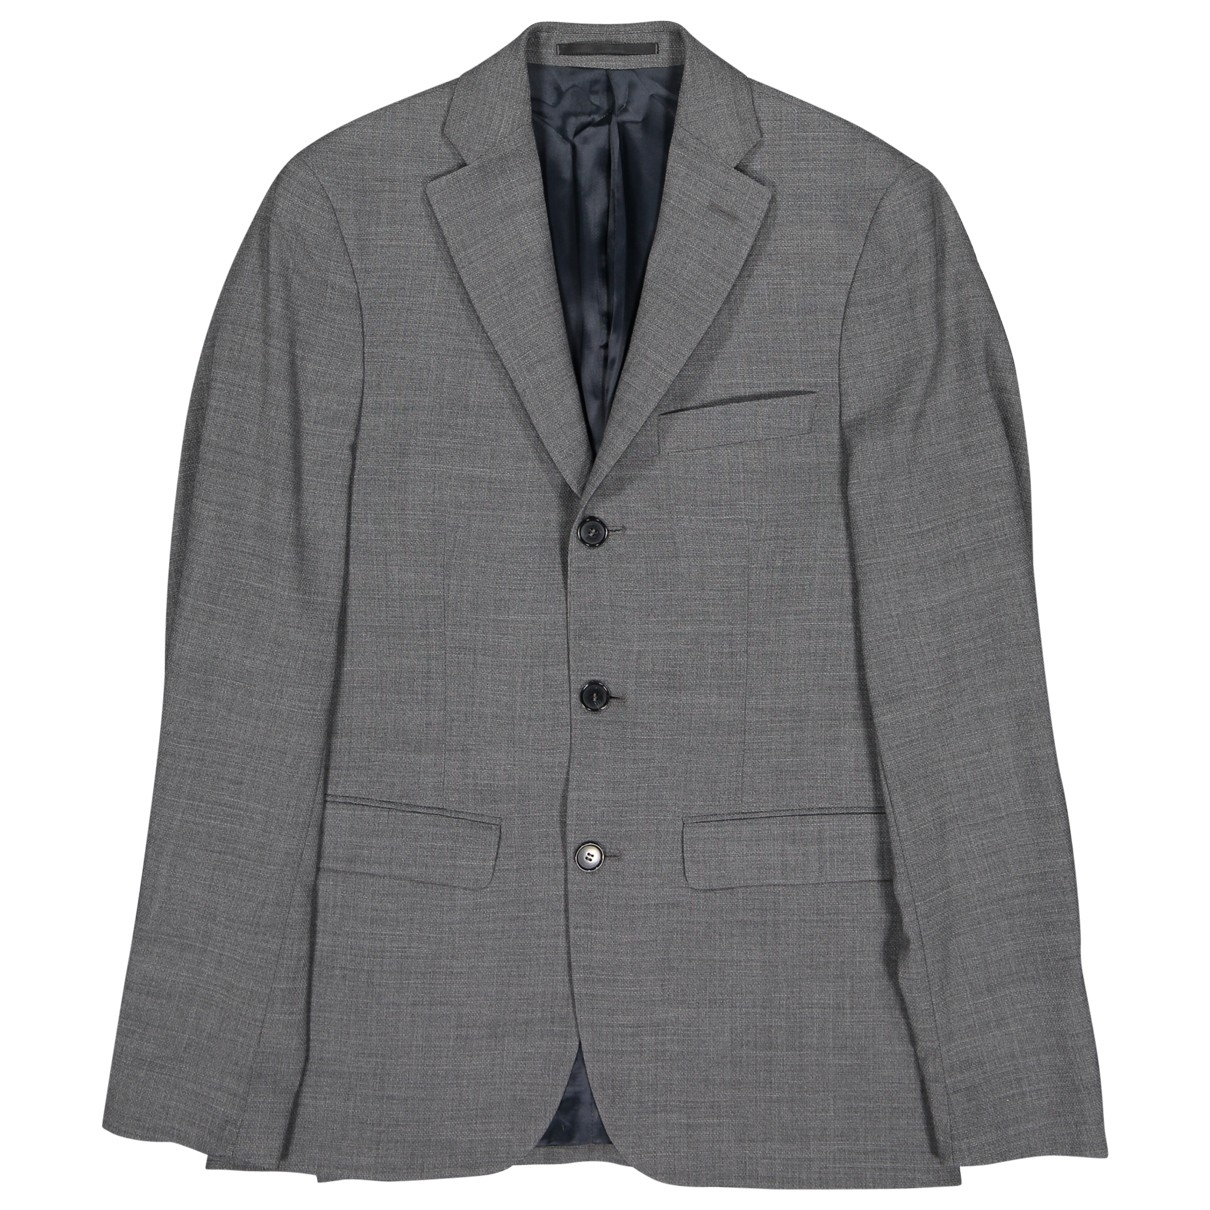 Acne Studios \N Grey Wool jacket  for Men 48 FR